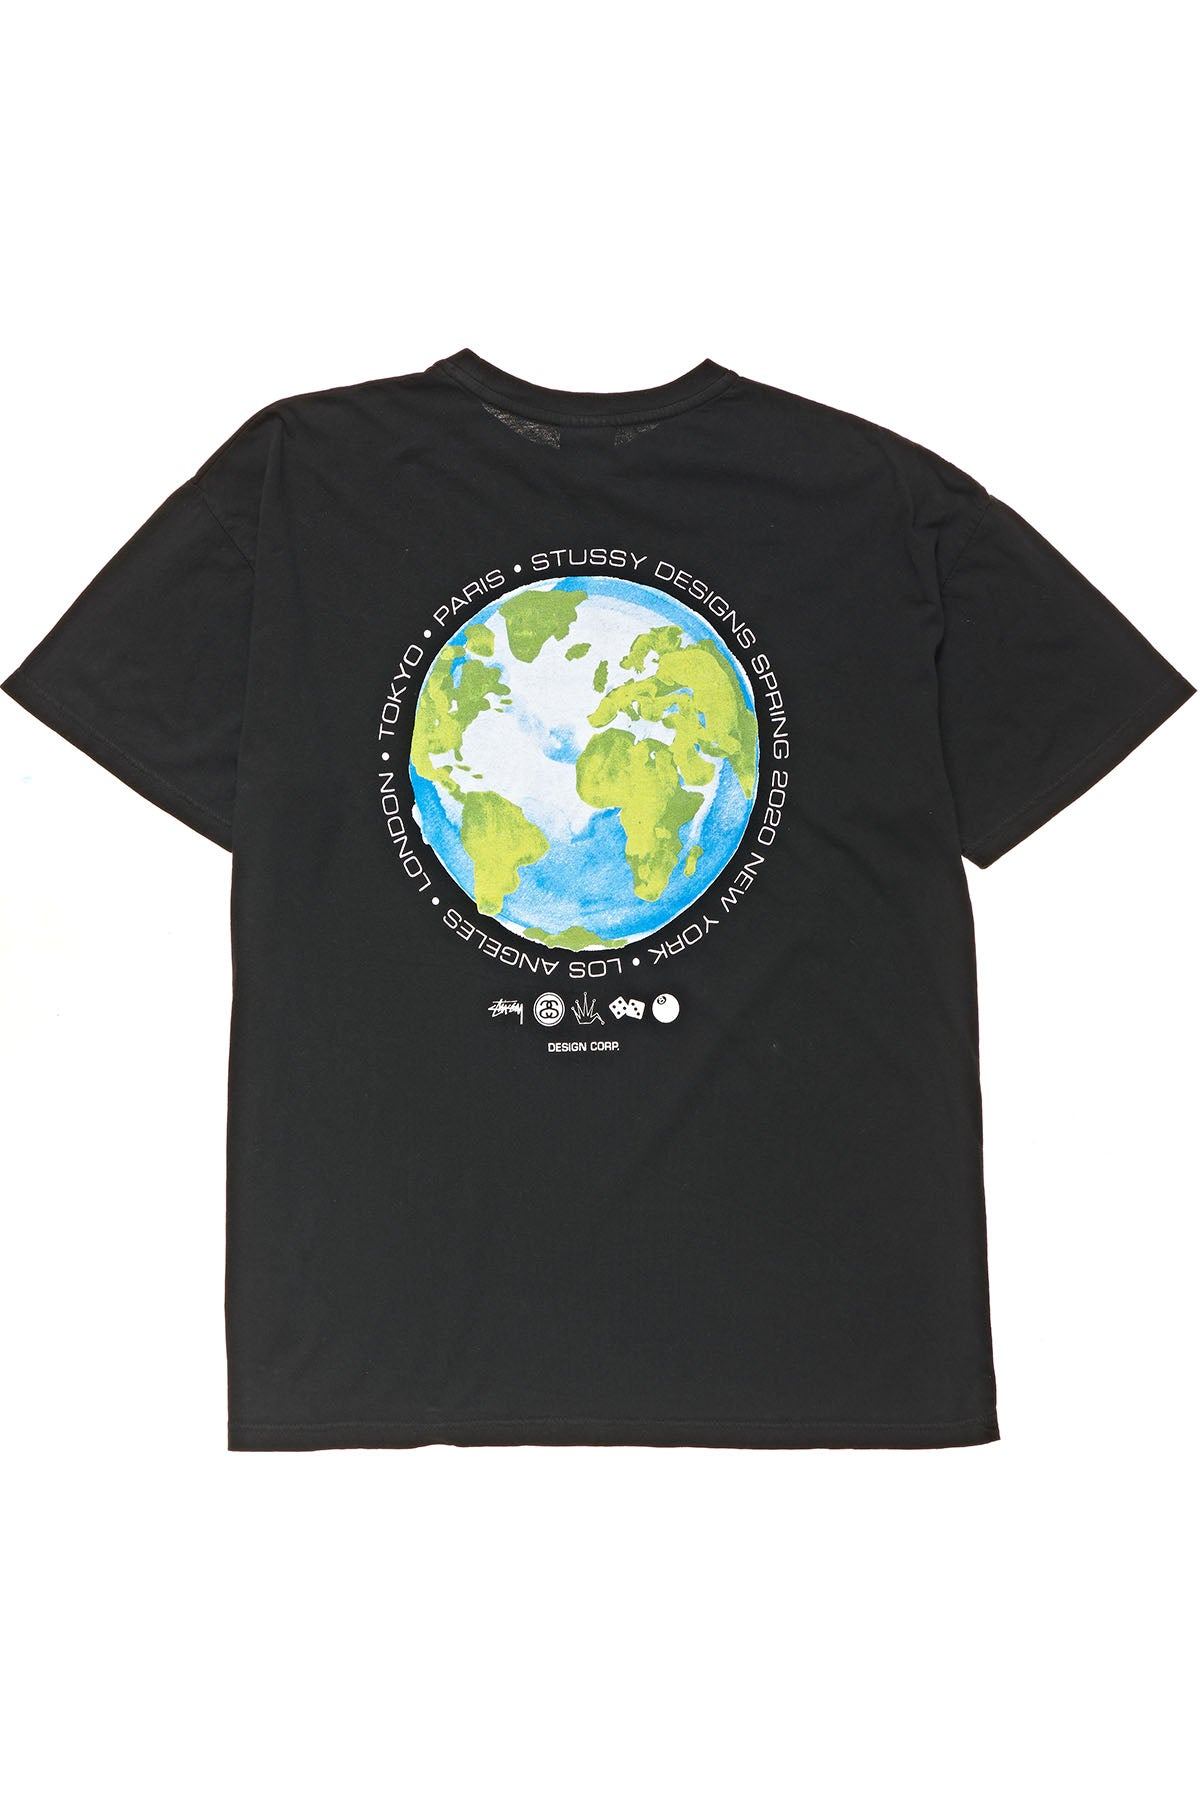 Global Design Corp Relaxed Tee